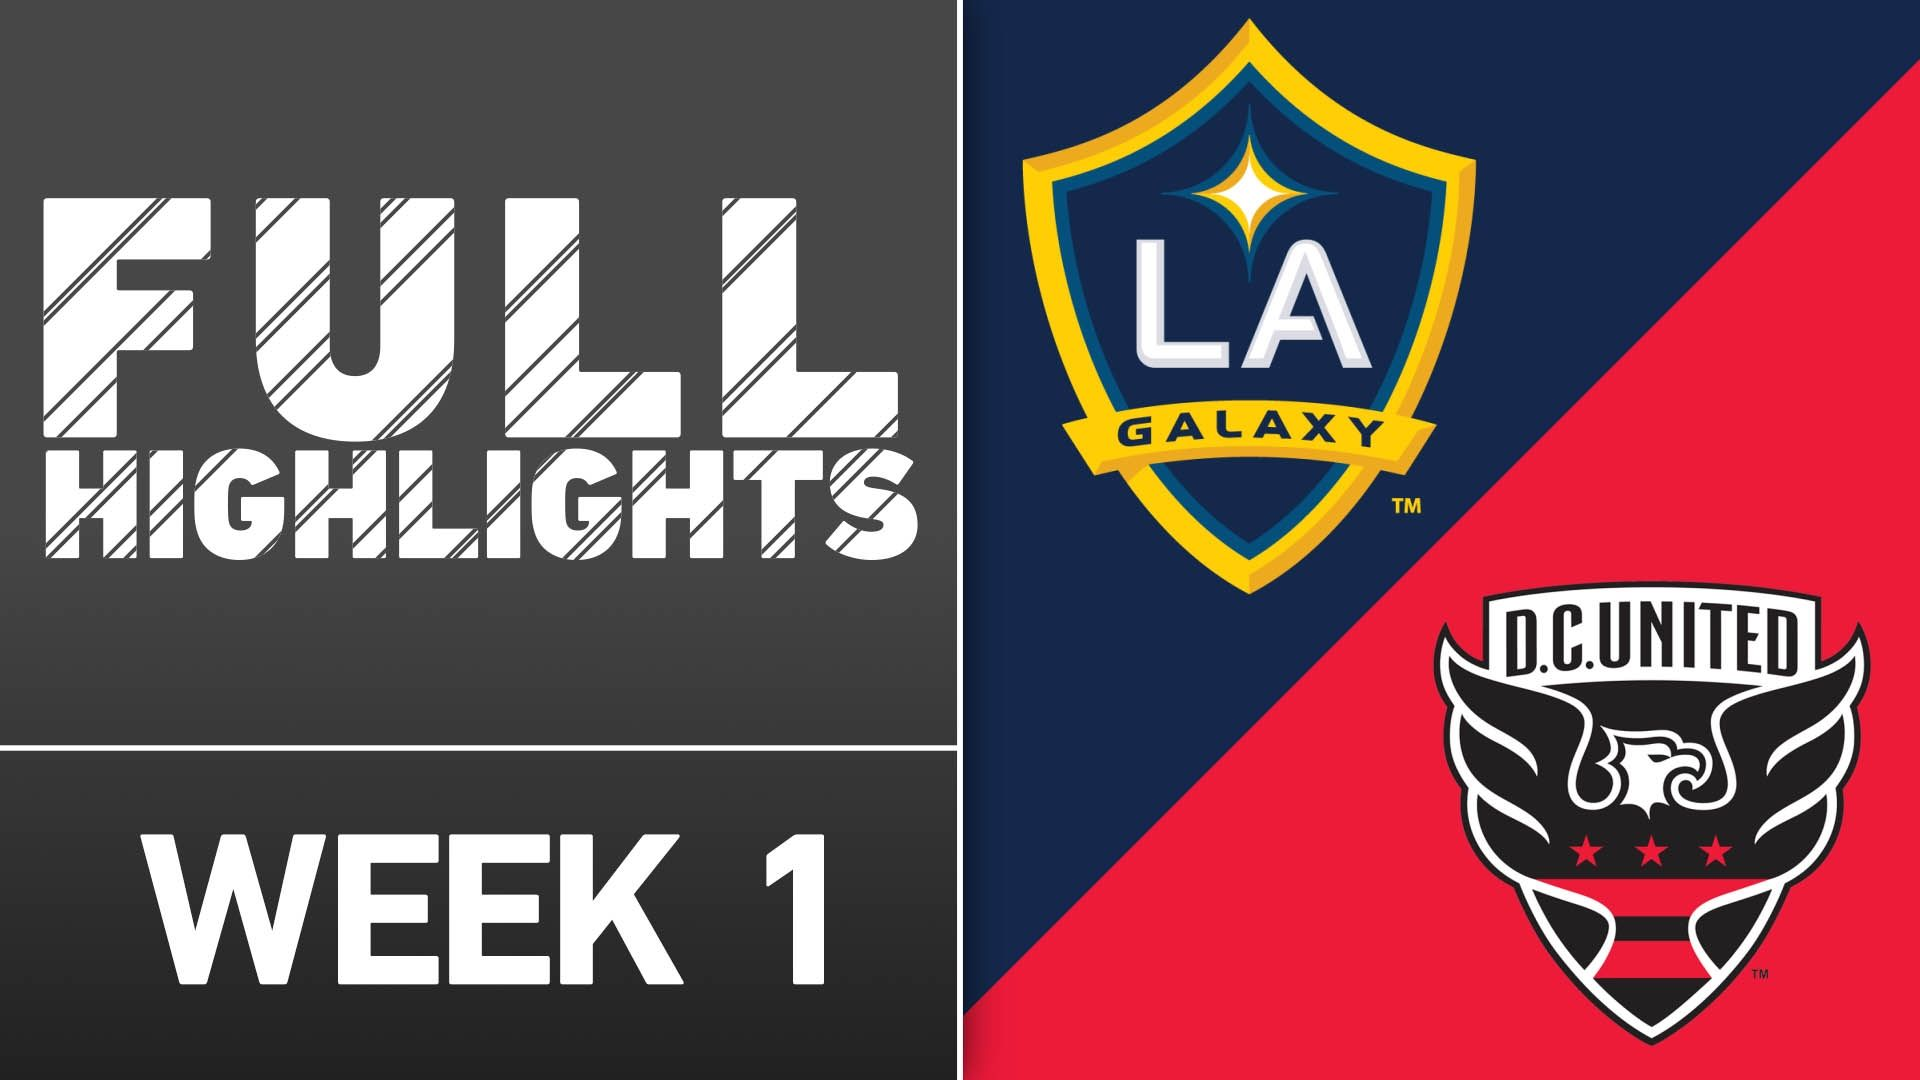 Video via MLS: D.C. United vs LA Galaxy | March 6, 2016 - ESPN Video